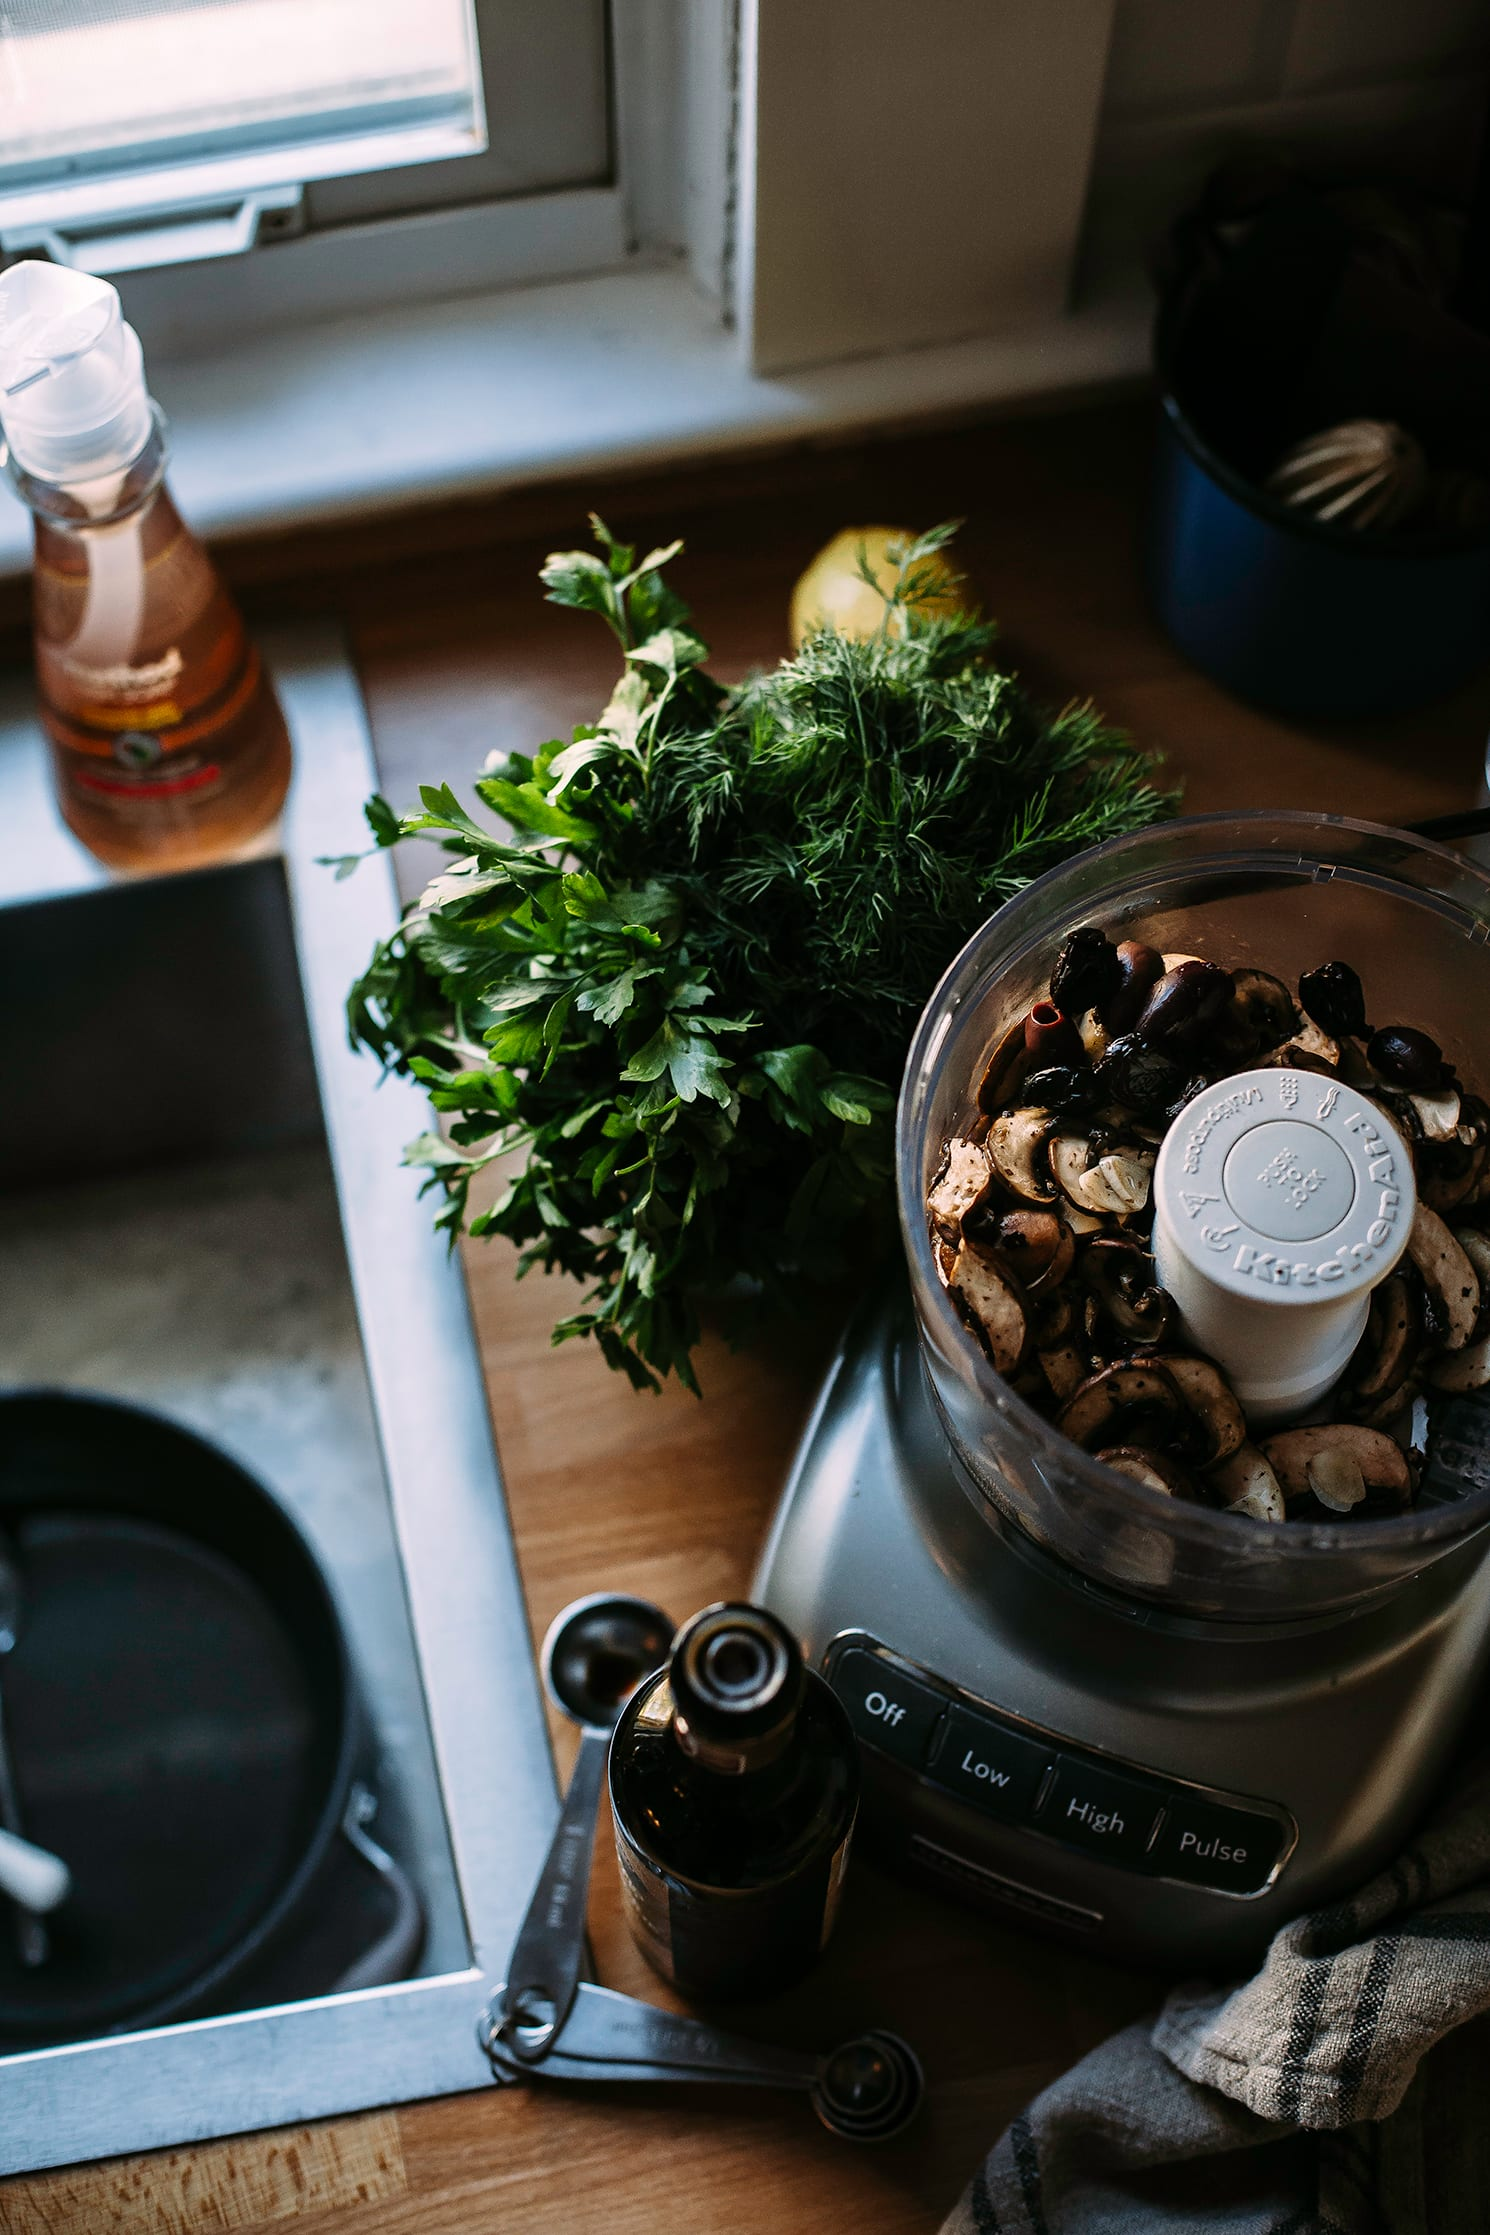 Image shows cooked mushrooms in the bowl of a food processor with a bouquet of fresh herbs nearby.